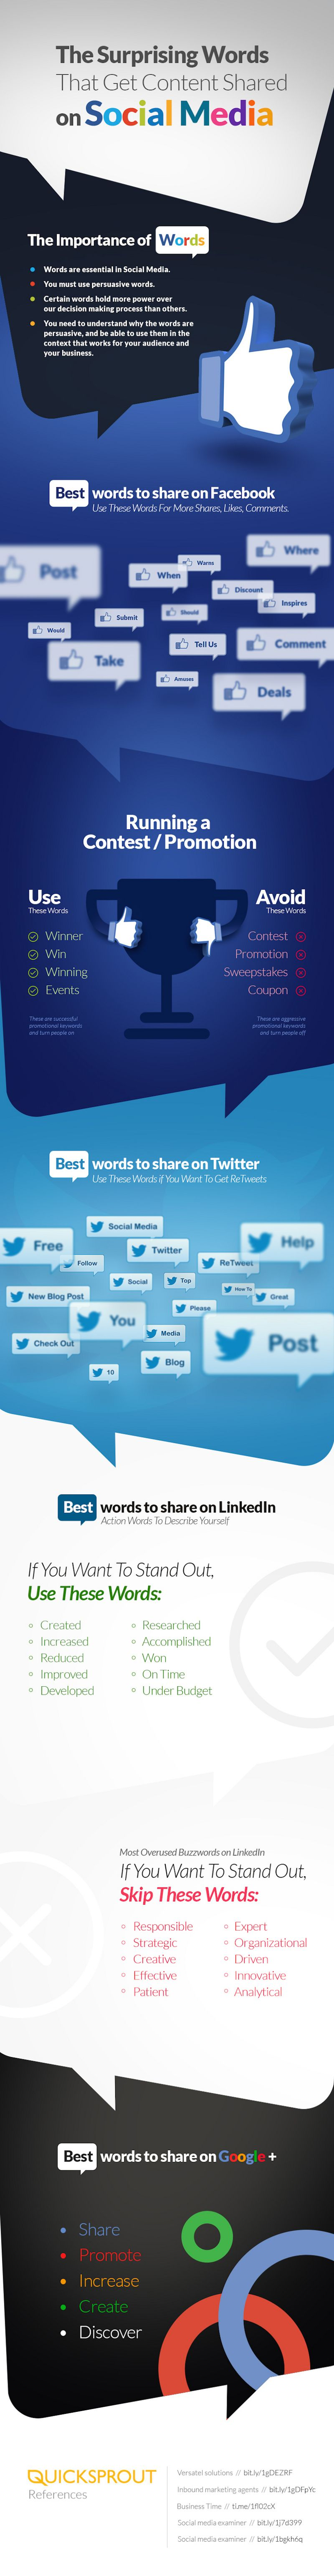 How the power of words can help increase your shares! on #socialmedia #marketing